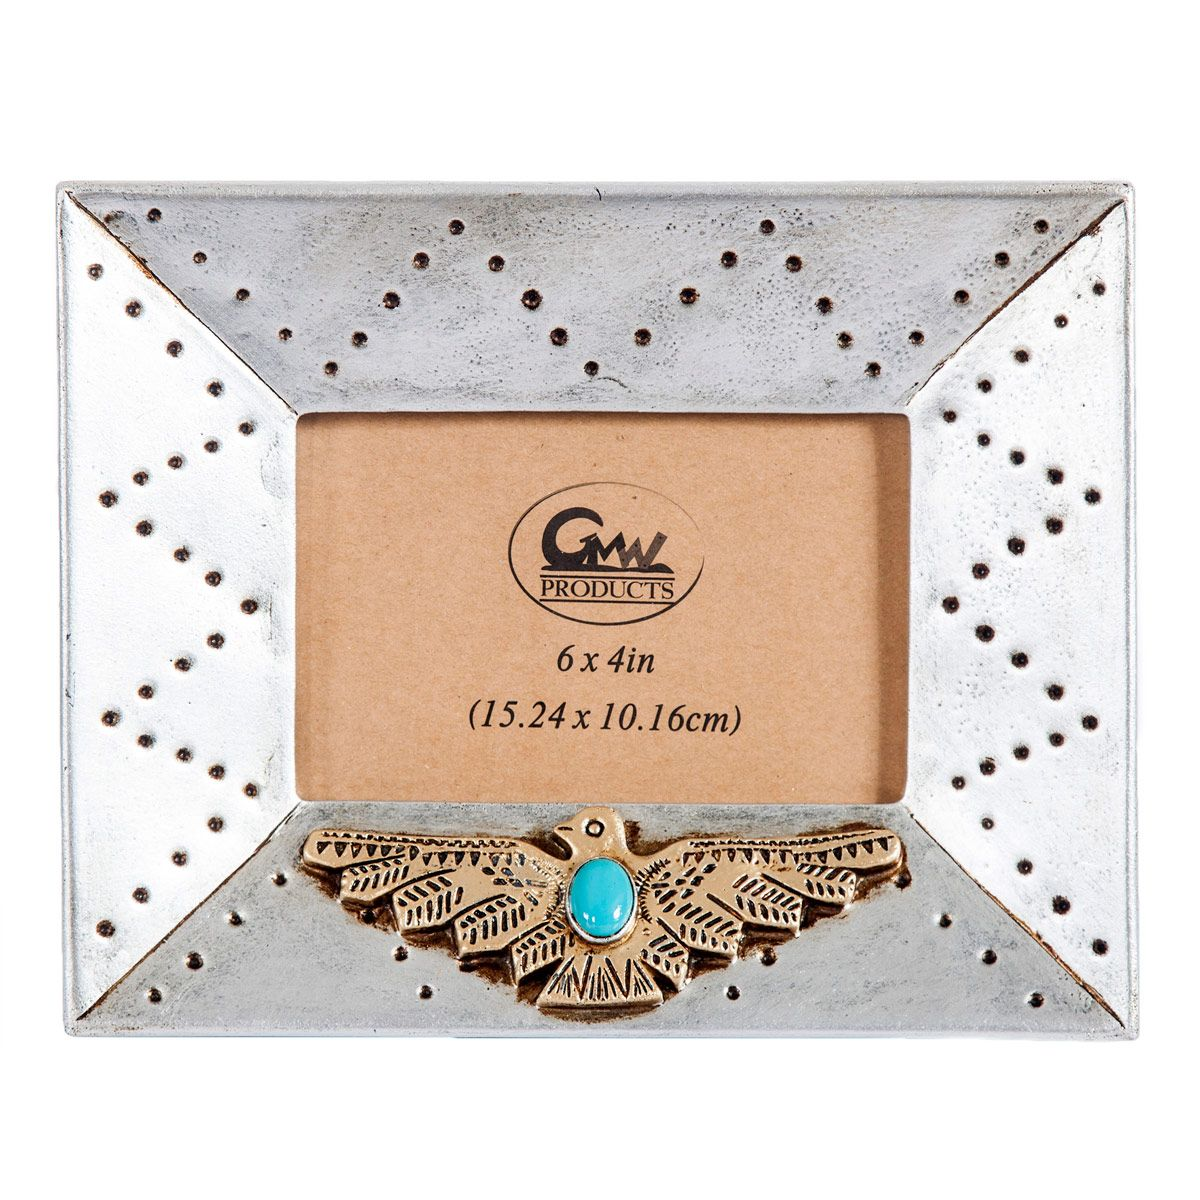 Golden Thunderbird 4 x 6 Photo Frame - OUT OF STOCK UNTIL 1/5/2022